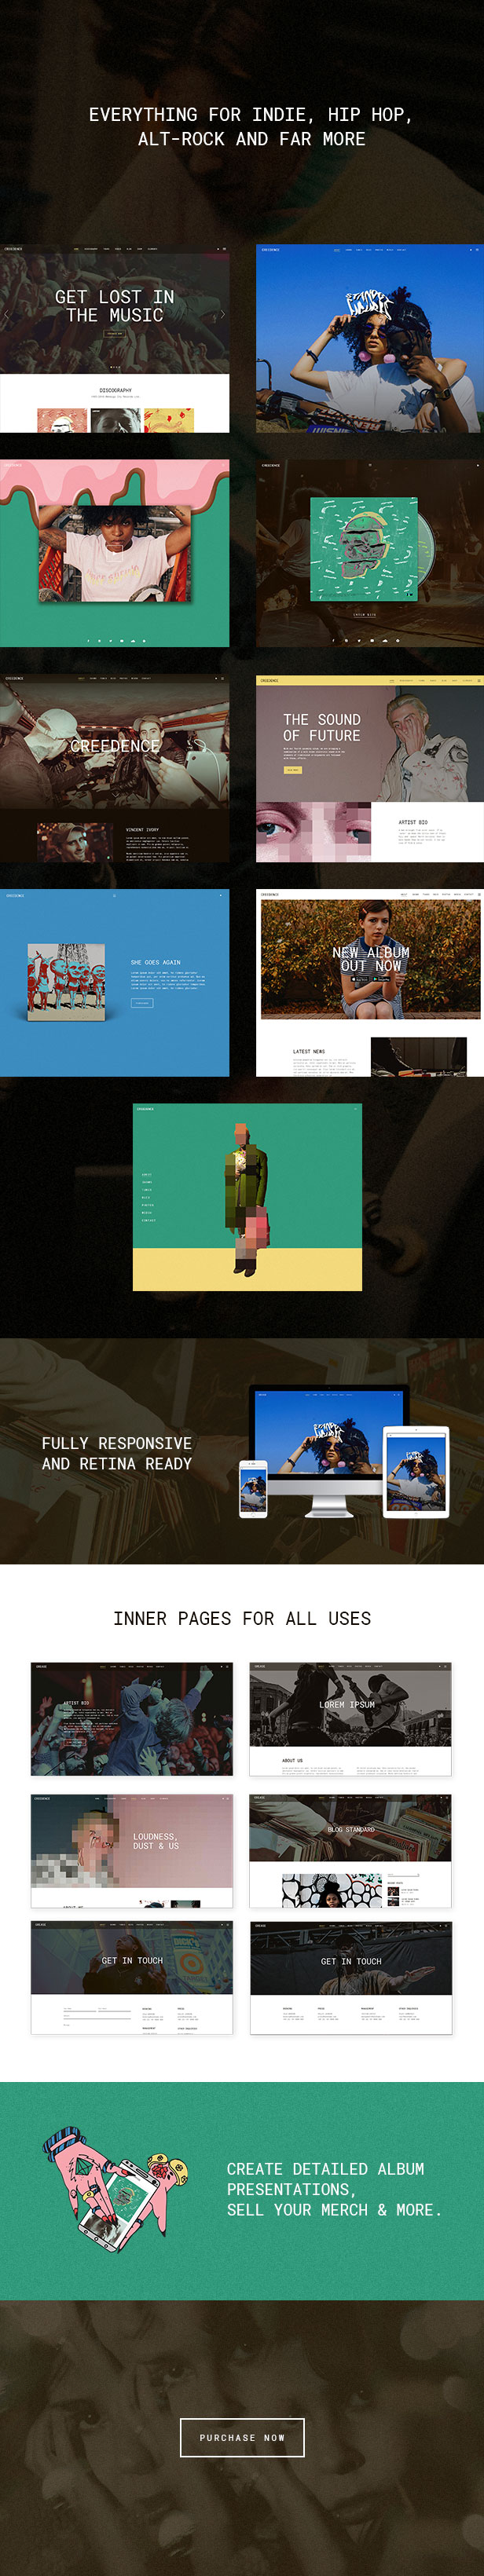 WordPress theme Creedence - An Alternative Music Theme for Bands and Labels (Music and Bands)